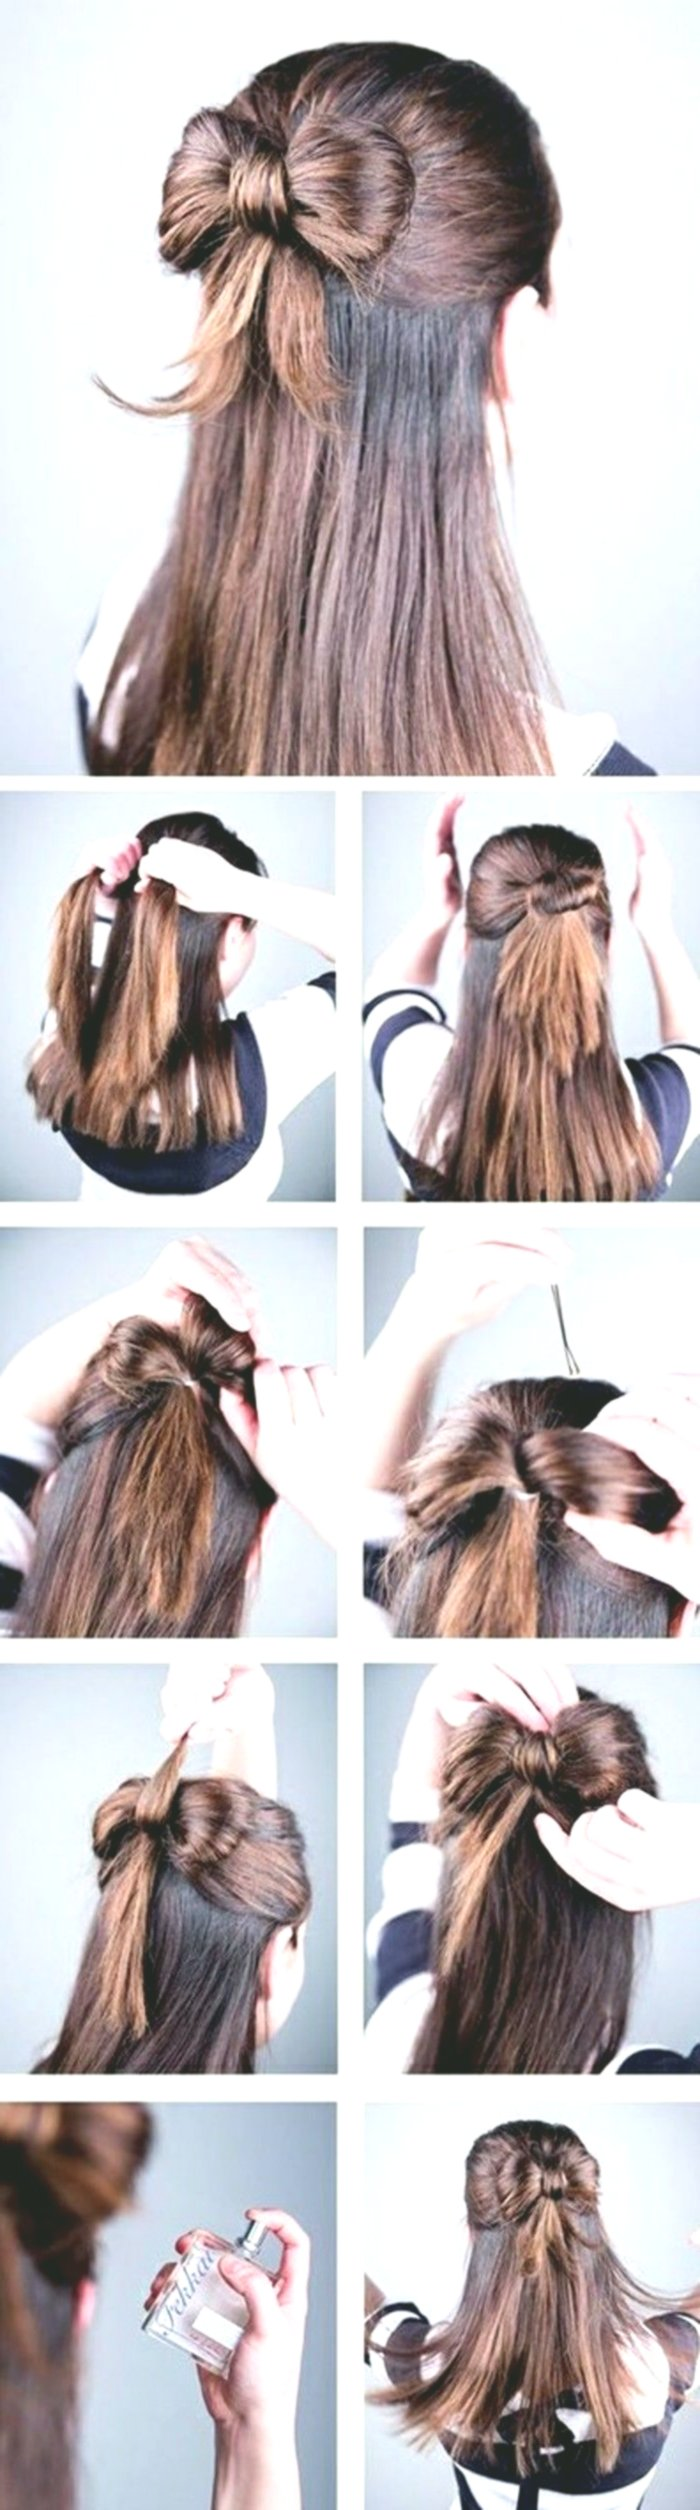 best of half-open braided hairstyles image-fascinating Semi-open braided hairstyles concepts